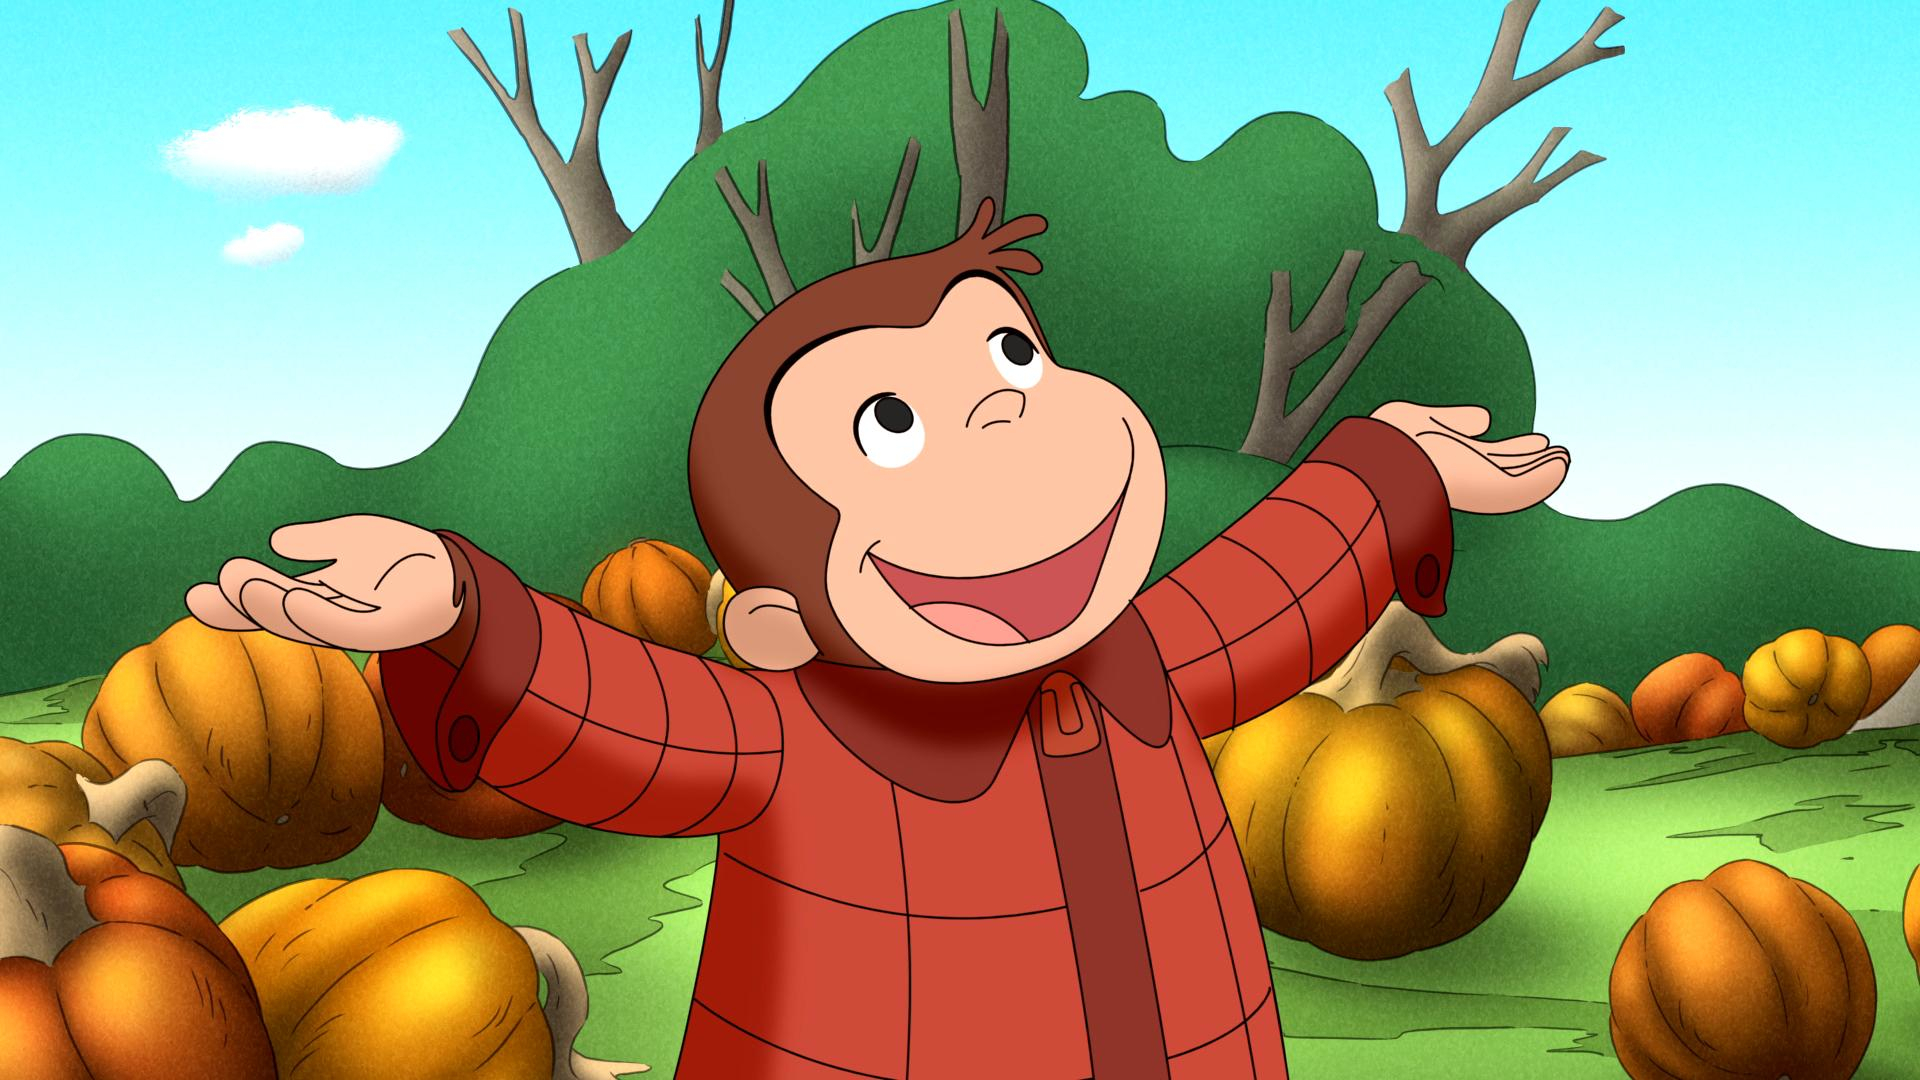 pbs kids premieres first curious george halloween special | business